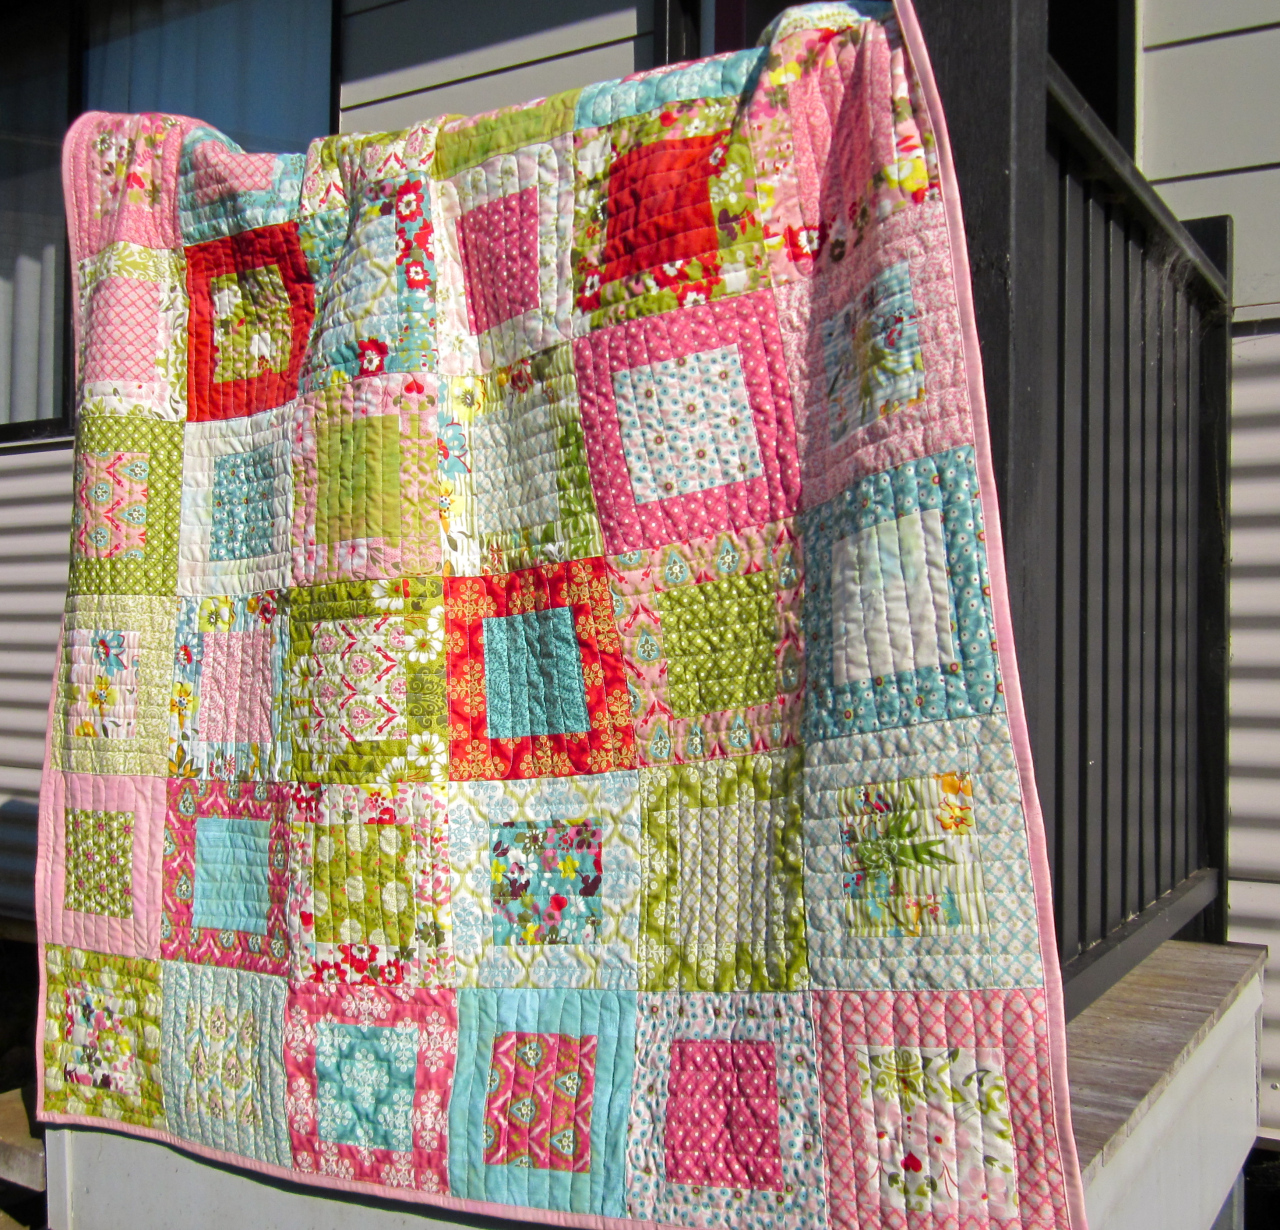 15 Free Quilt Patterns that Use Precuts! - Simple Simon ...